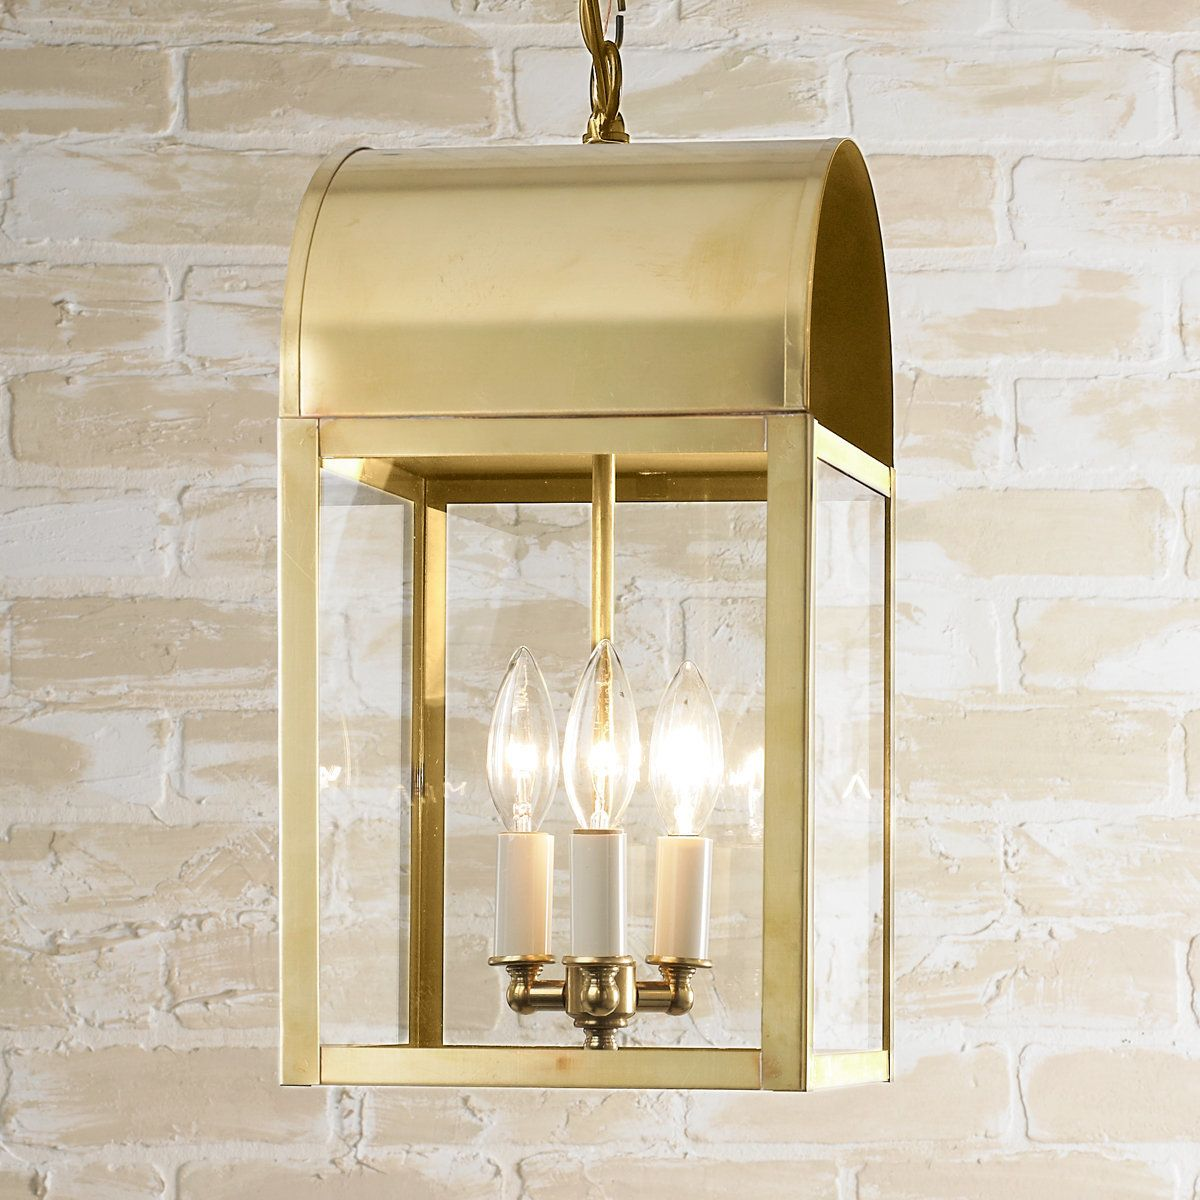 Arched Roof Outdoor Hanging Lantern | Hanging lanterns, Outdoor ...